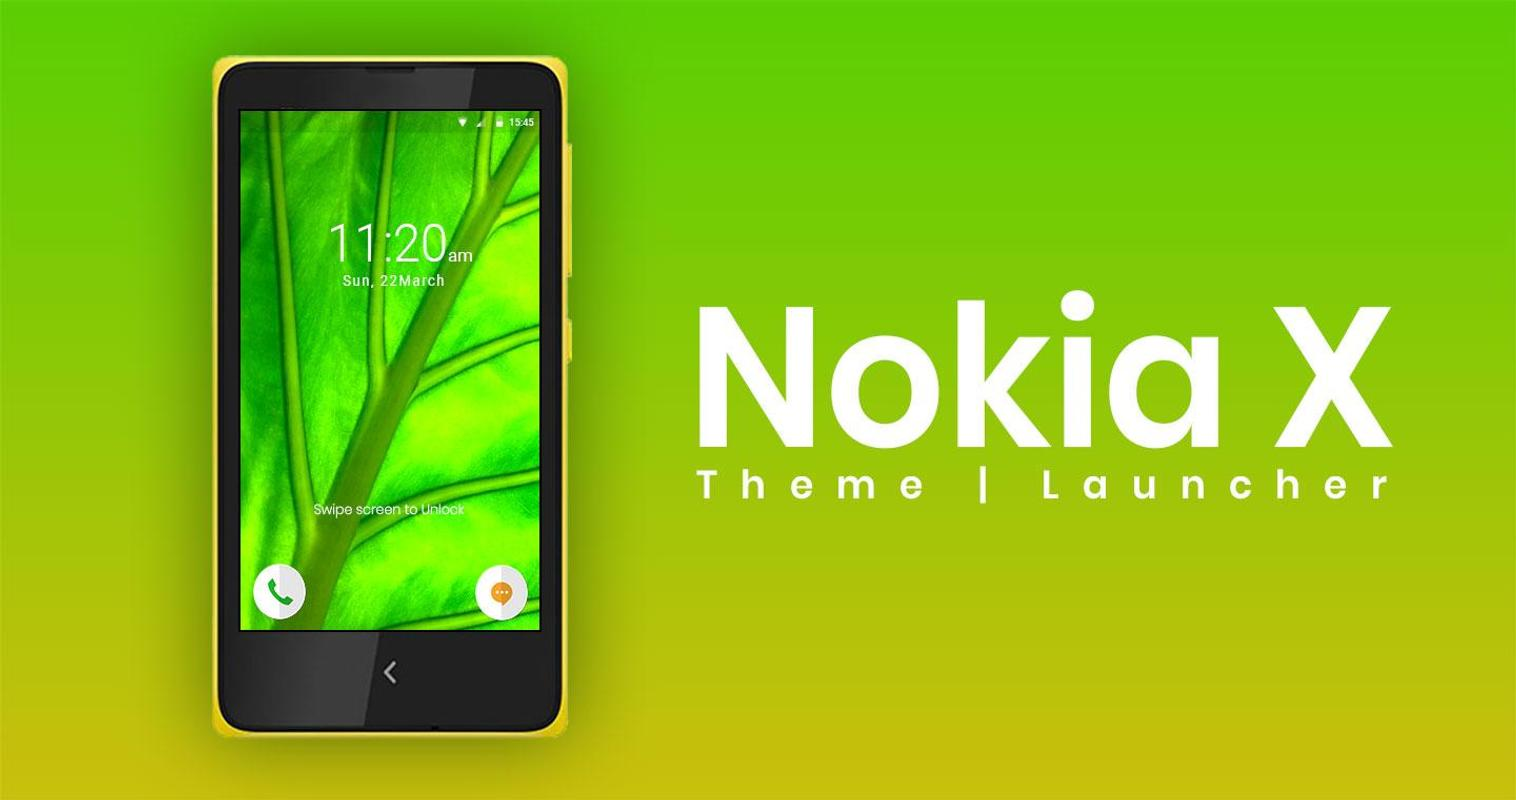 Nokia X Theme And Launcher For Android Apk Download Xl Yellow Poster Screenshot 1